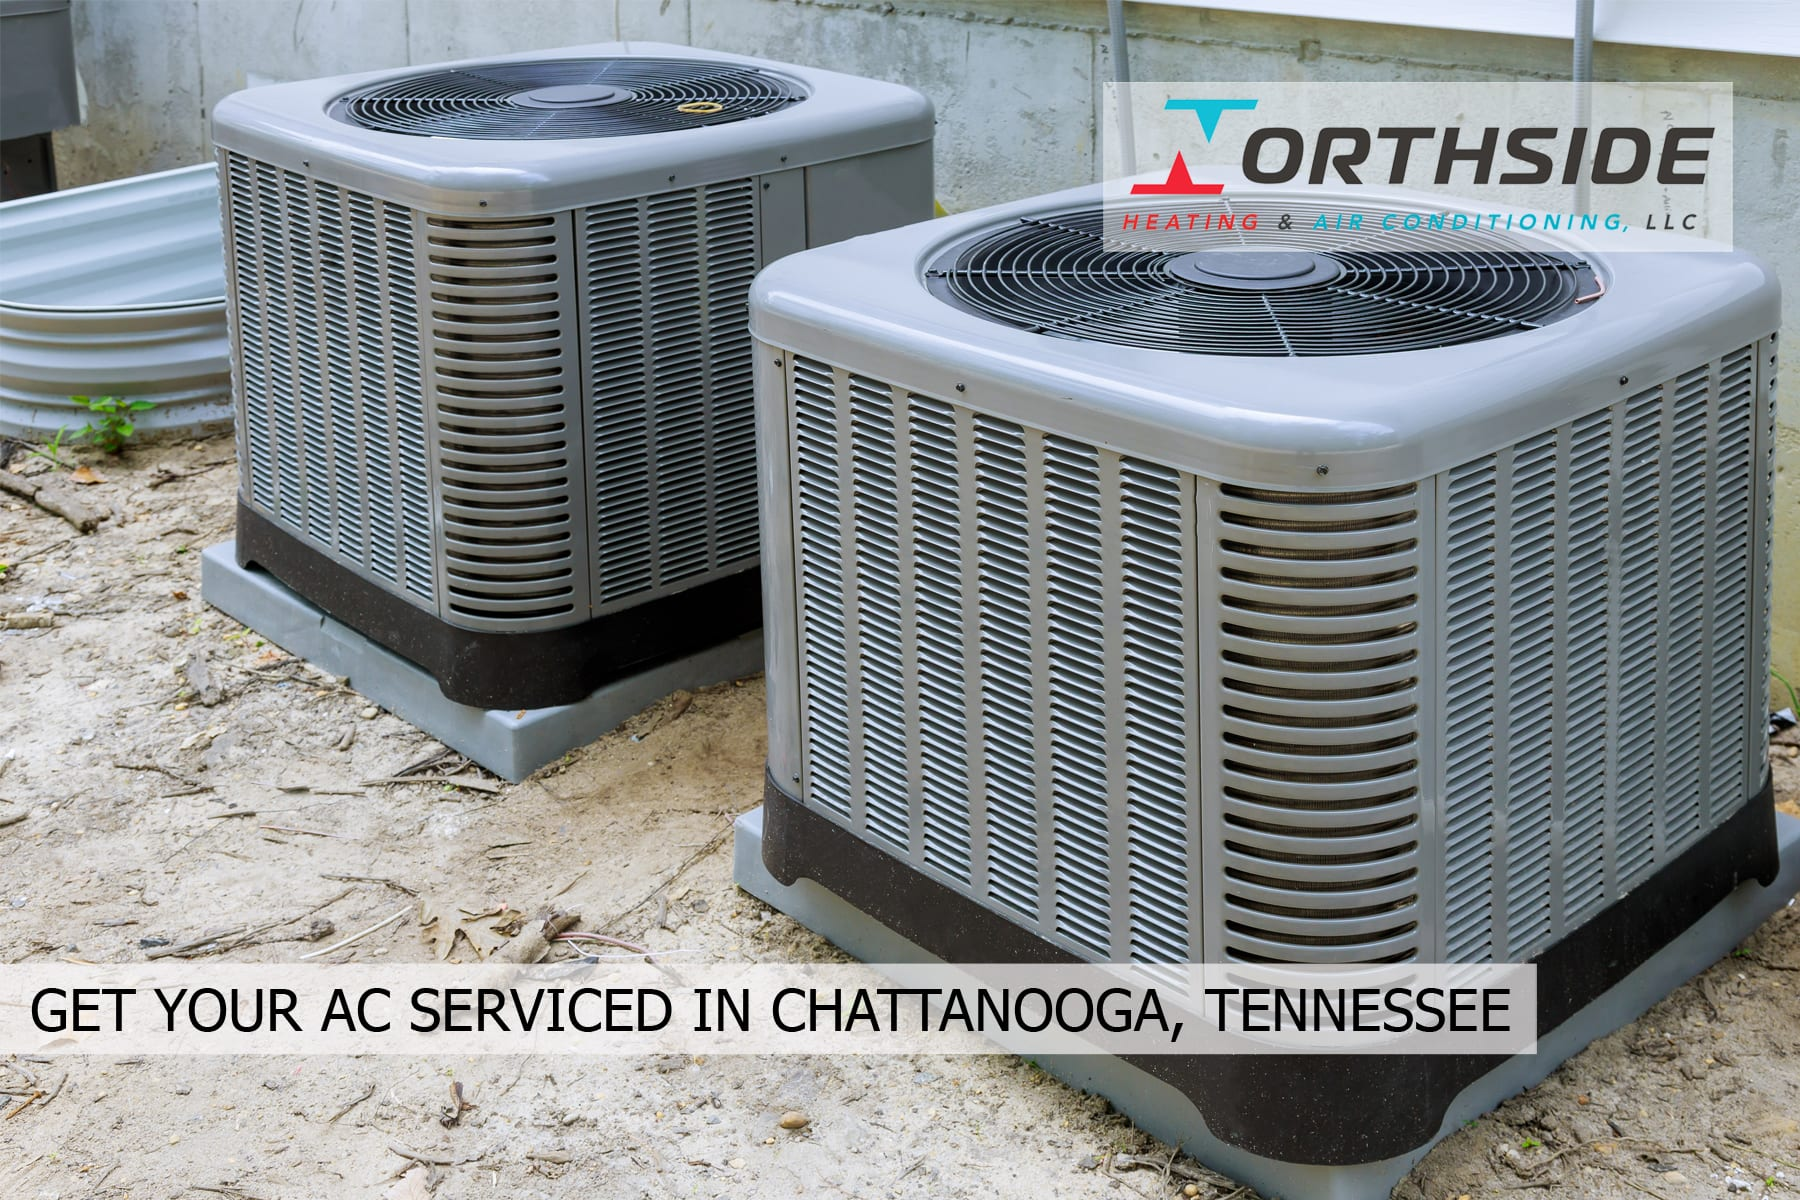 GET YOUR AC SERVICED IN CHATTANOOGA, TENNESSEE